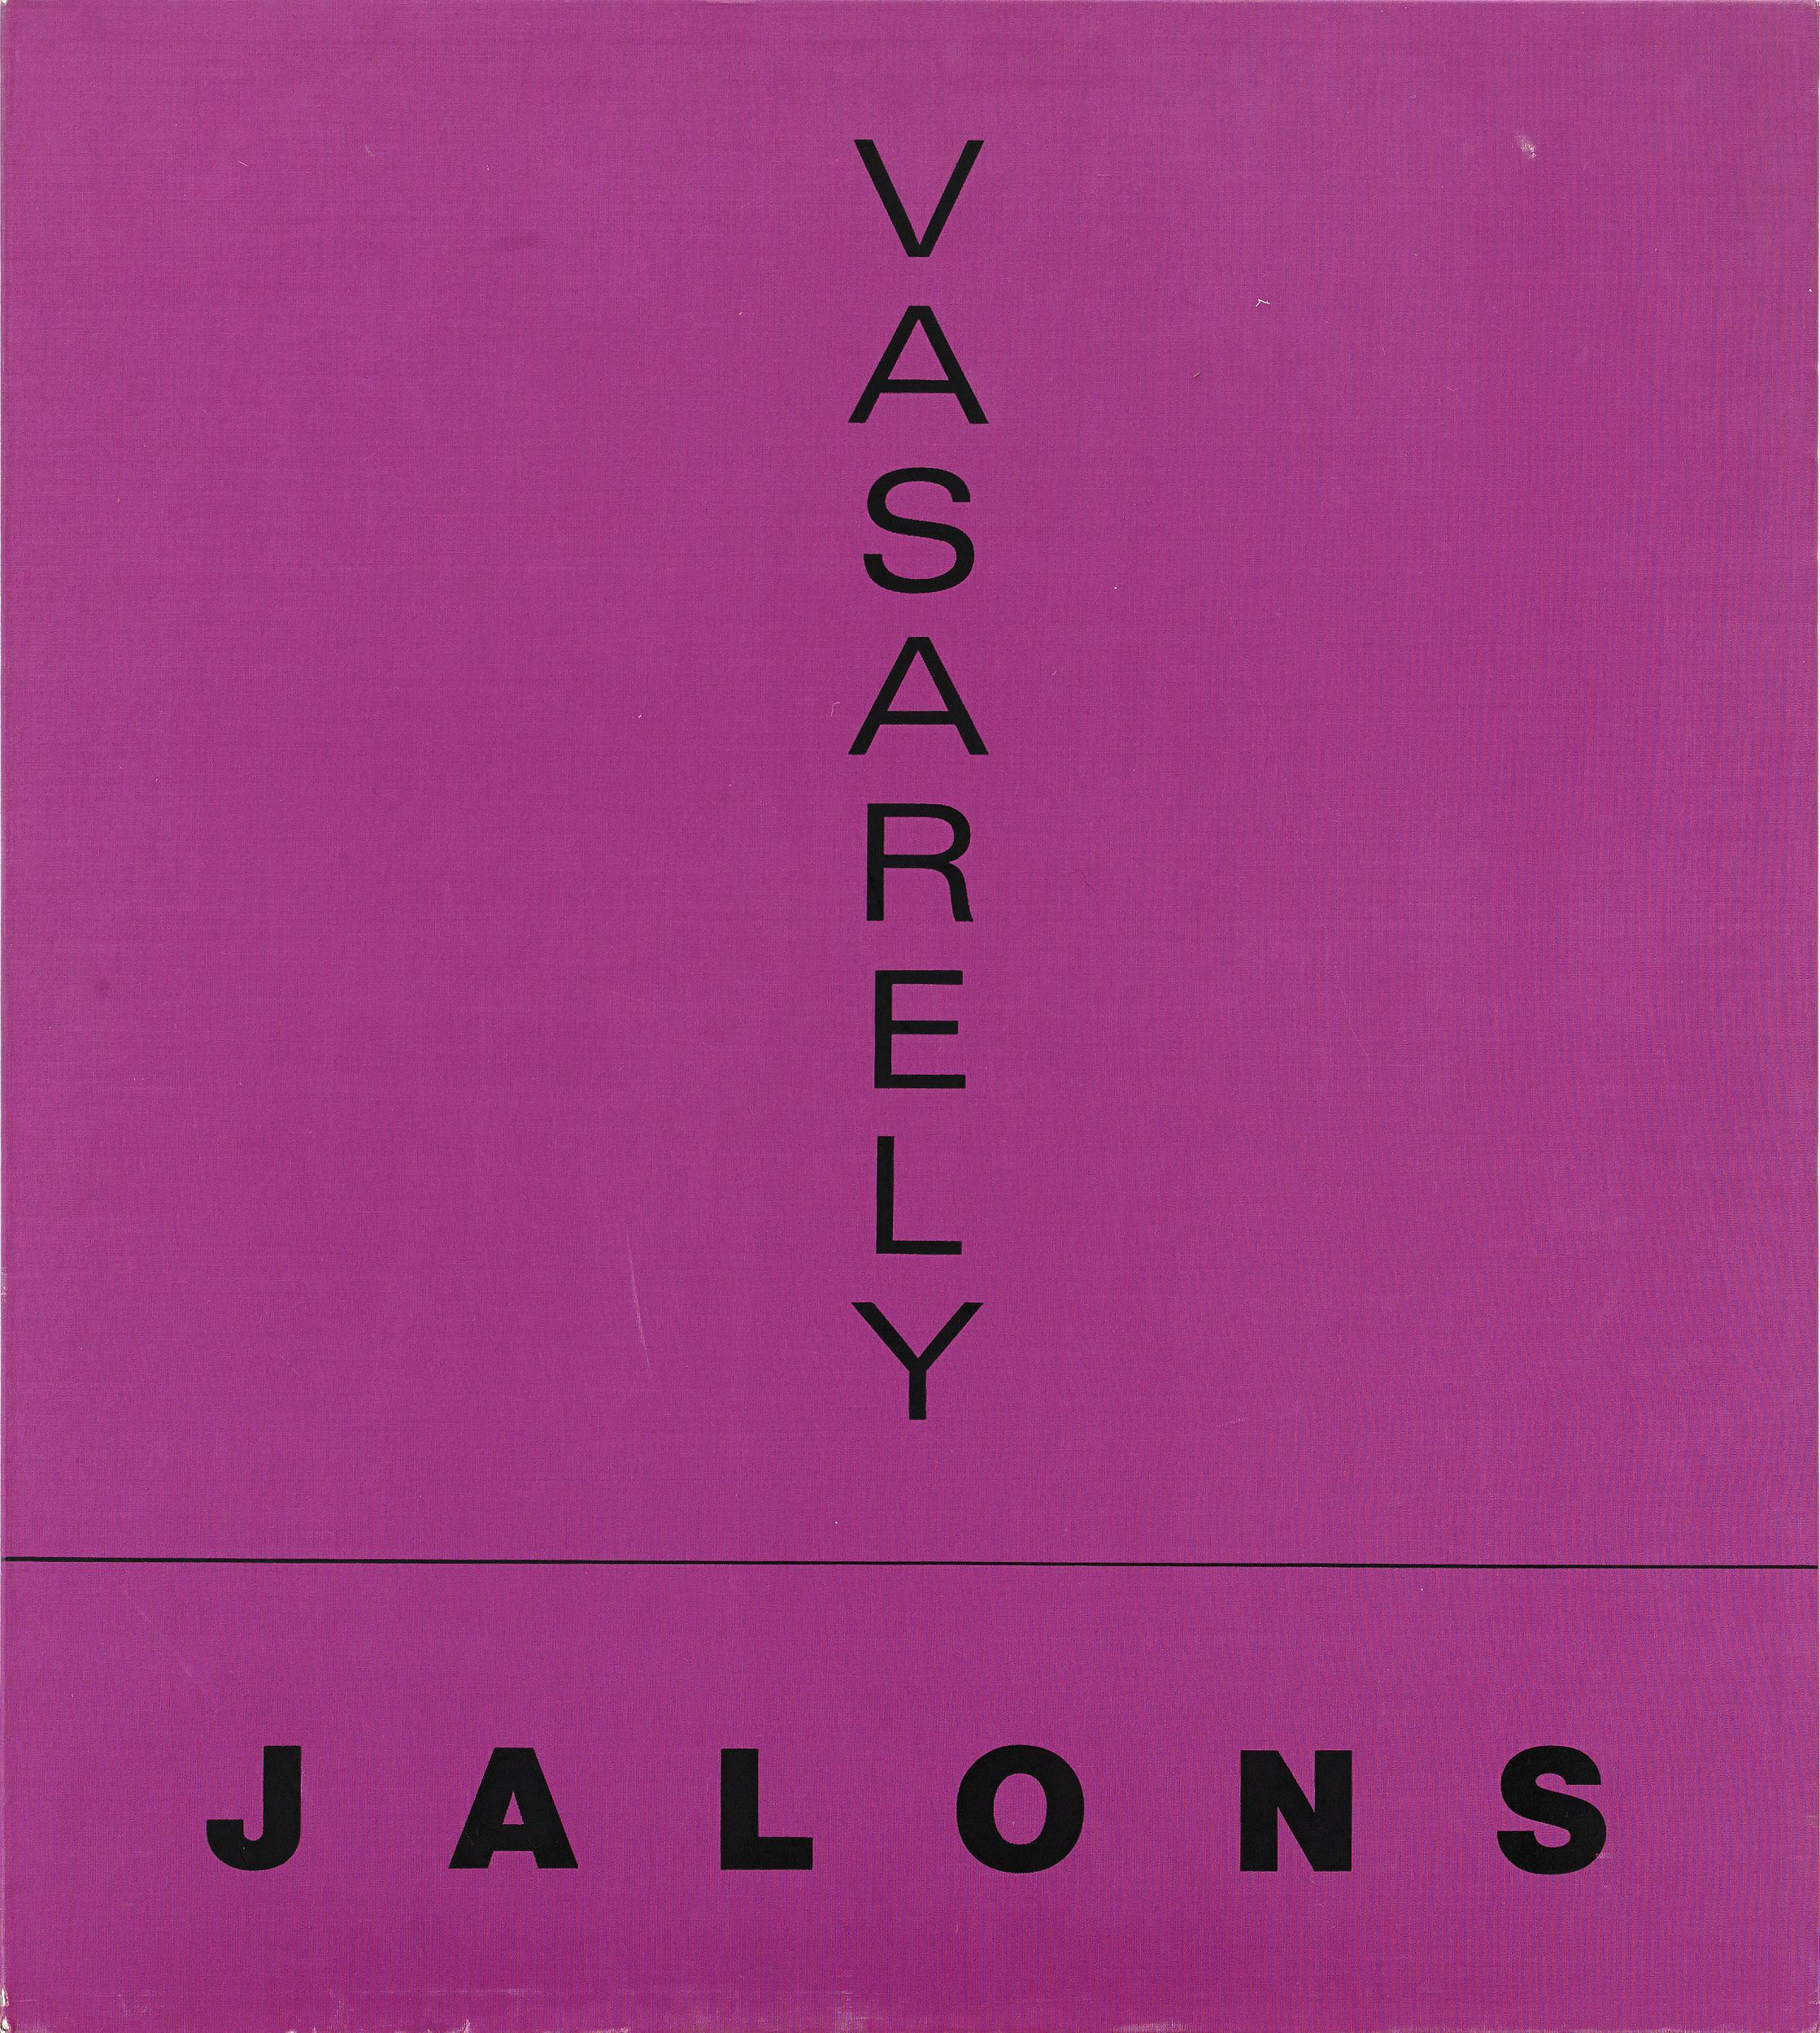 Victor Vasarely, Jalons